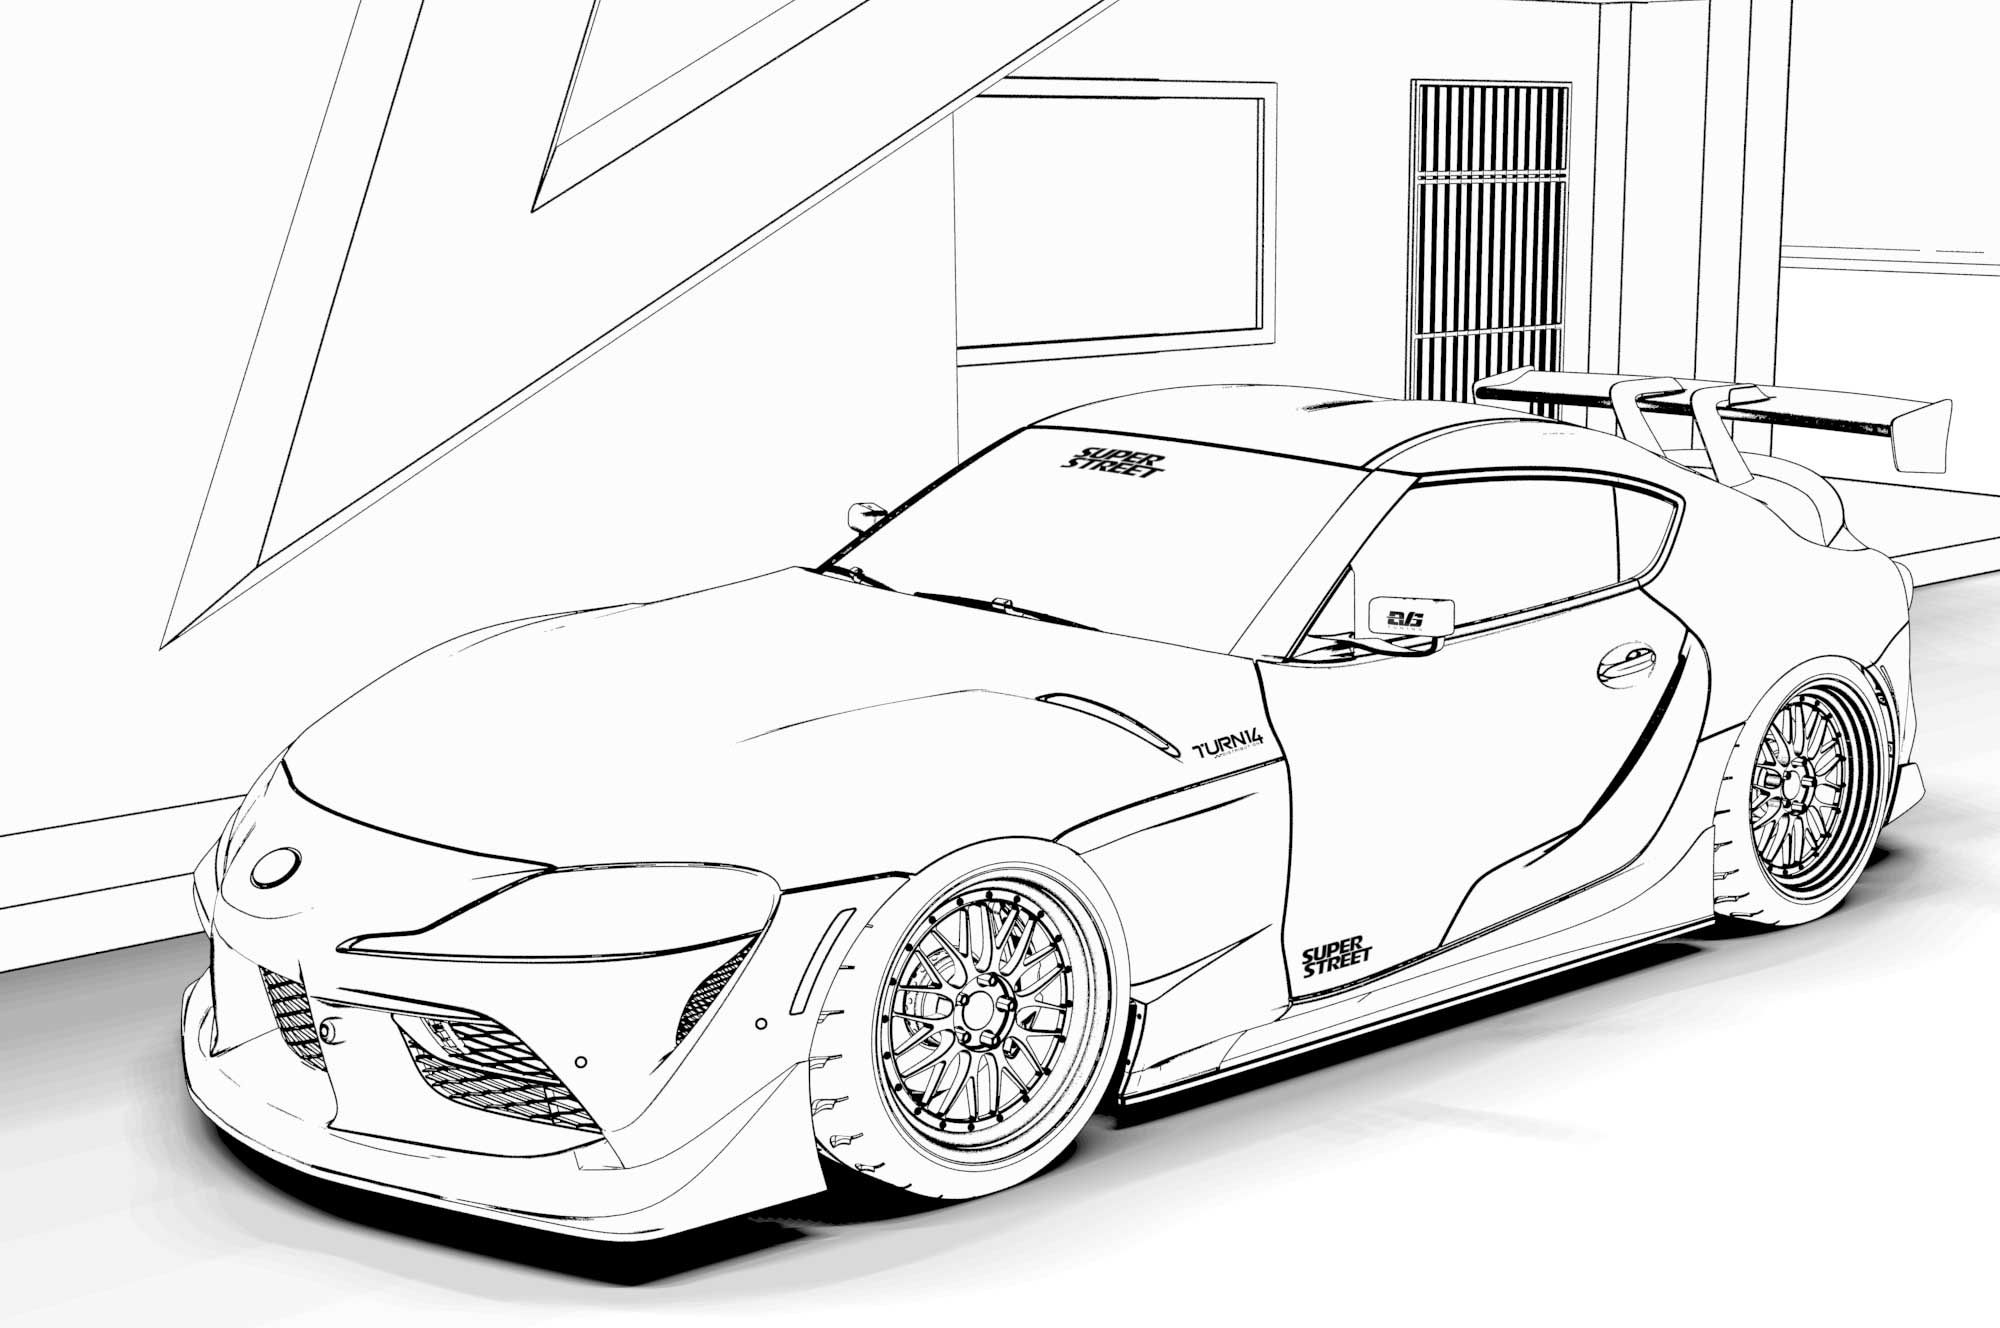 free car colouring pages: downloads of ferrari f40, toyota